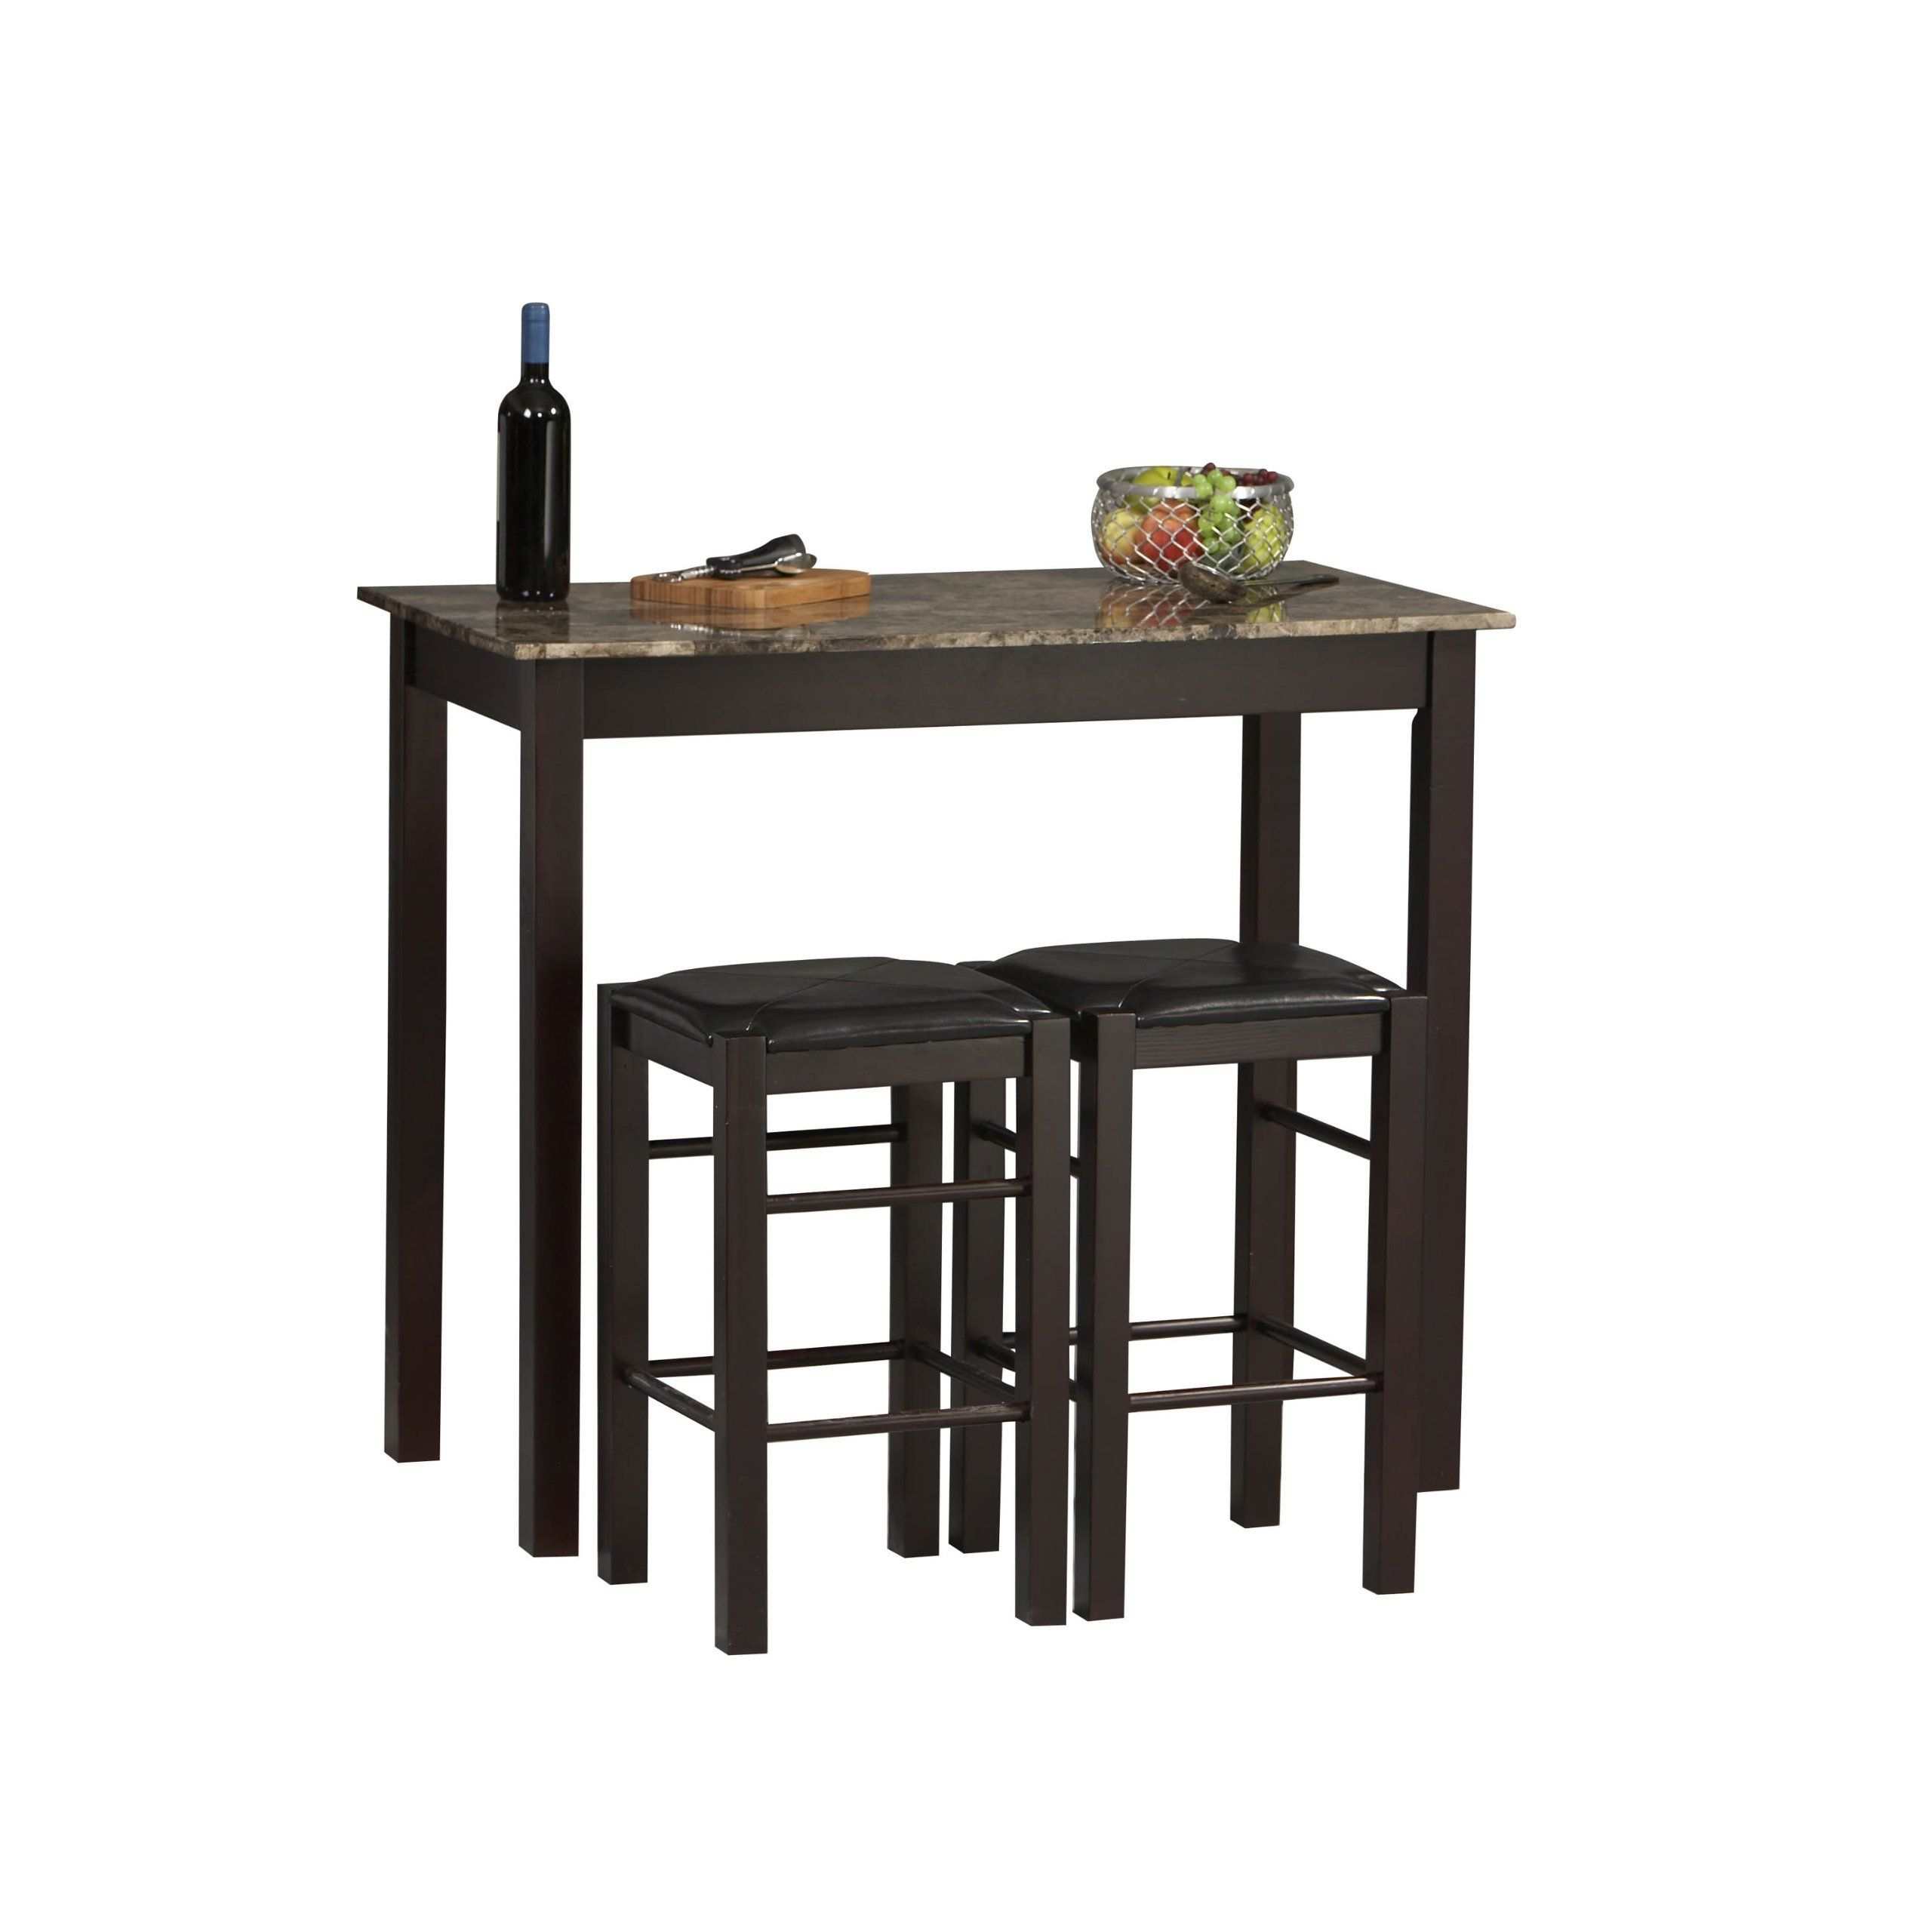 Tavern 3 Pc Counter Height Dining Set   Espresso (Table U0026 2 Stools)